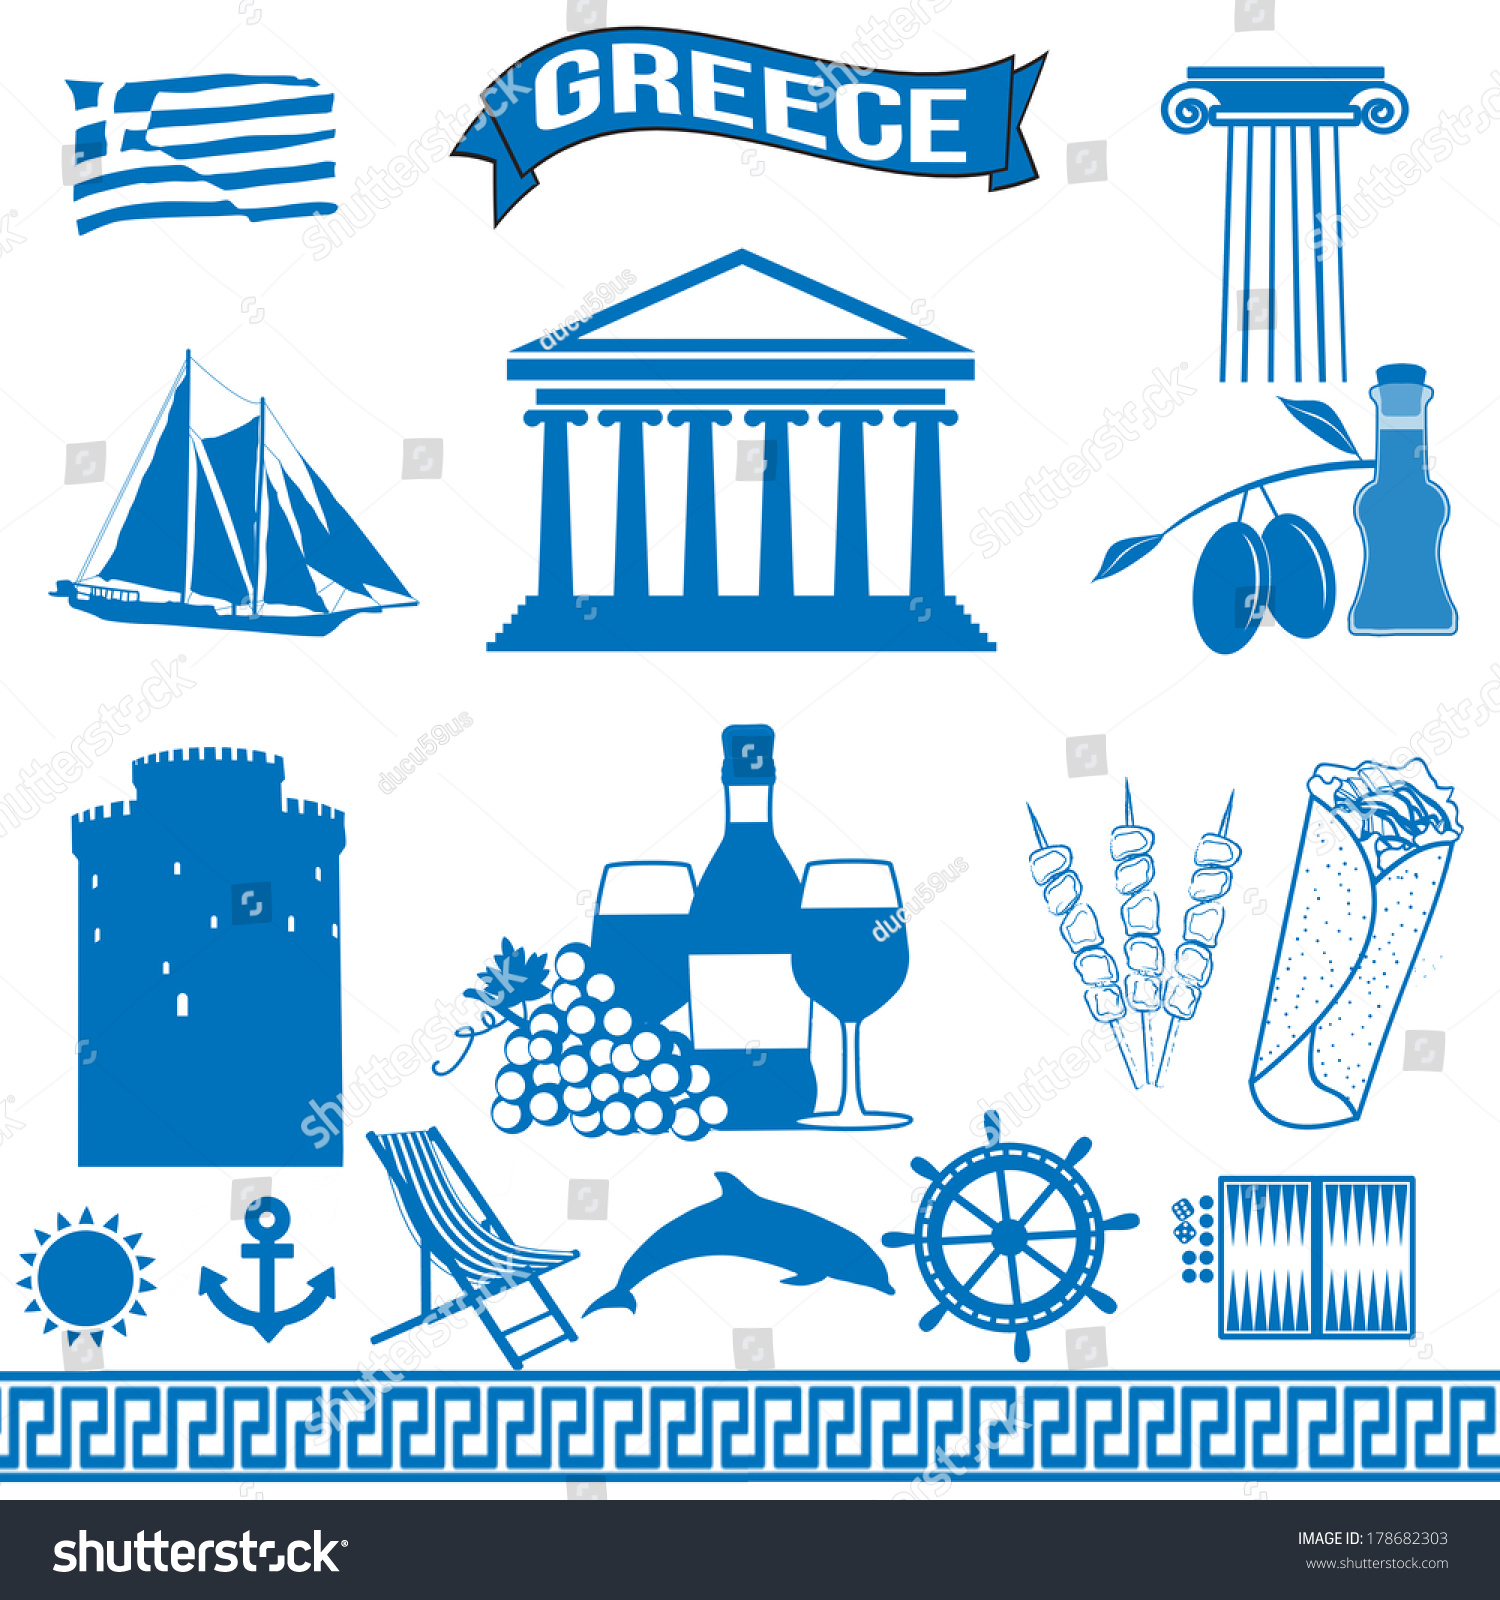 Royalty free greece traditional greek symbols on 178682303 greece traditional greek symbols on white background vector illustration 178682303 buycottarizona